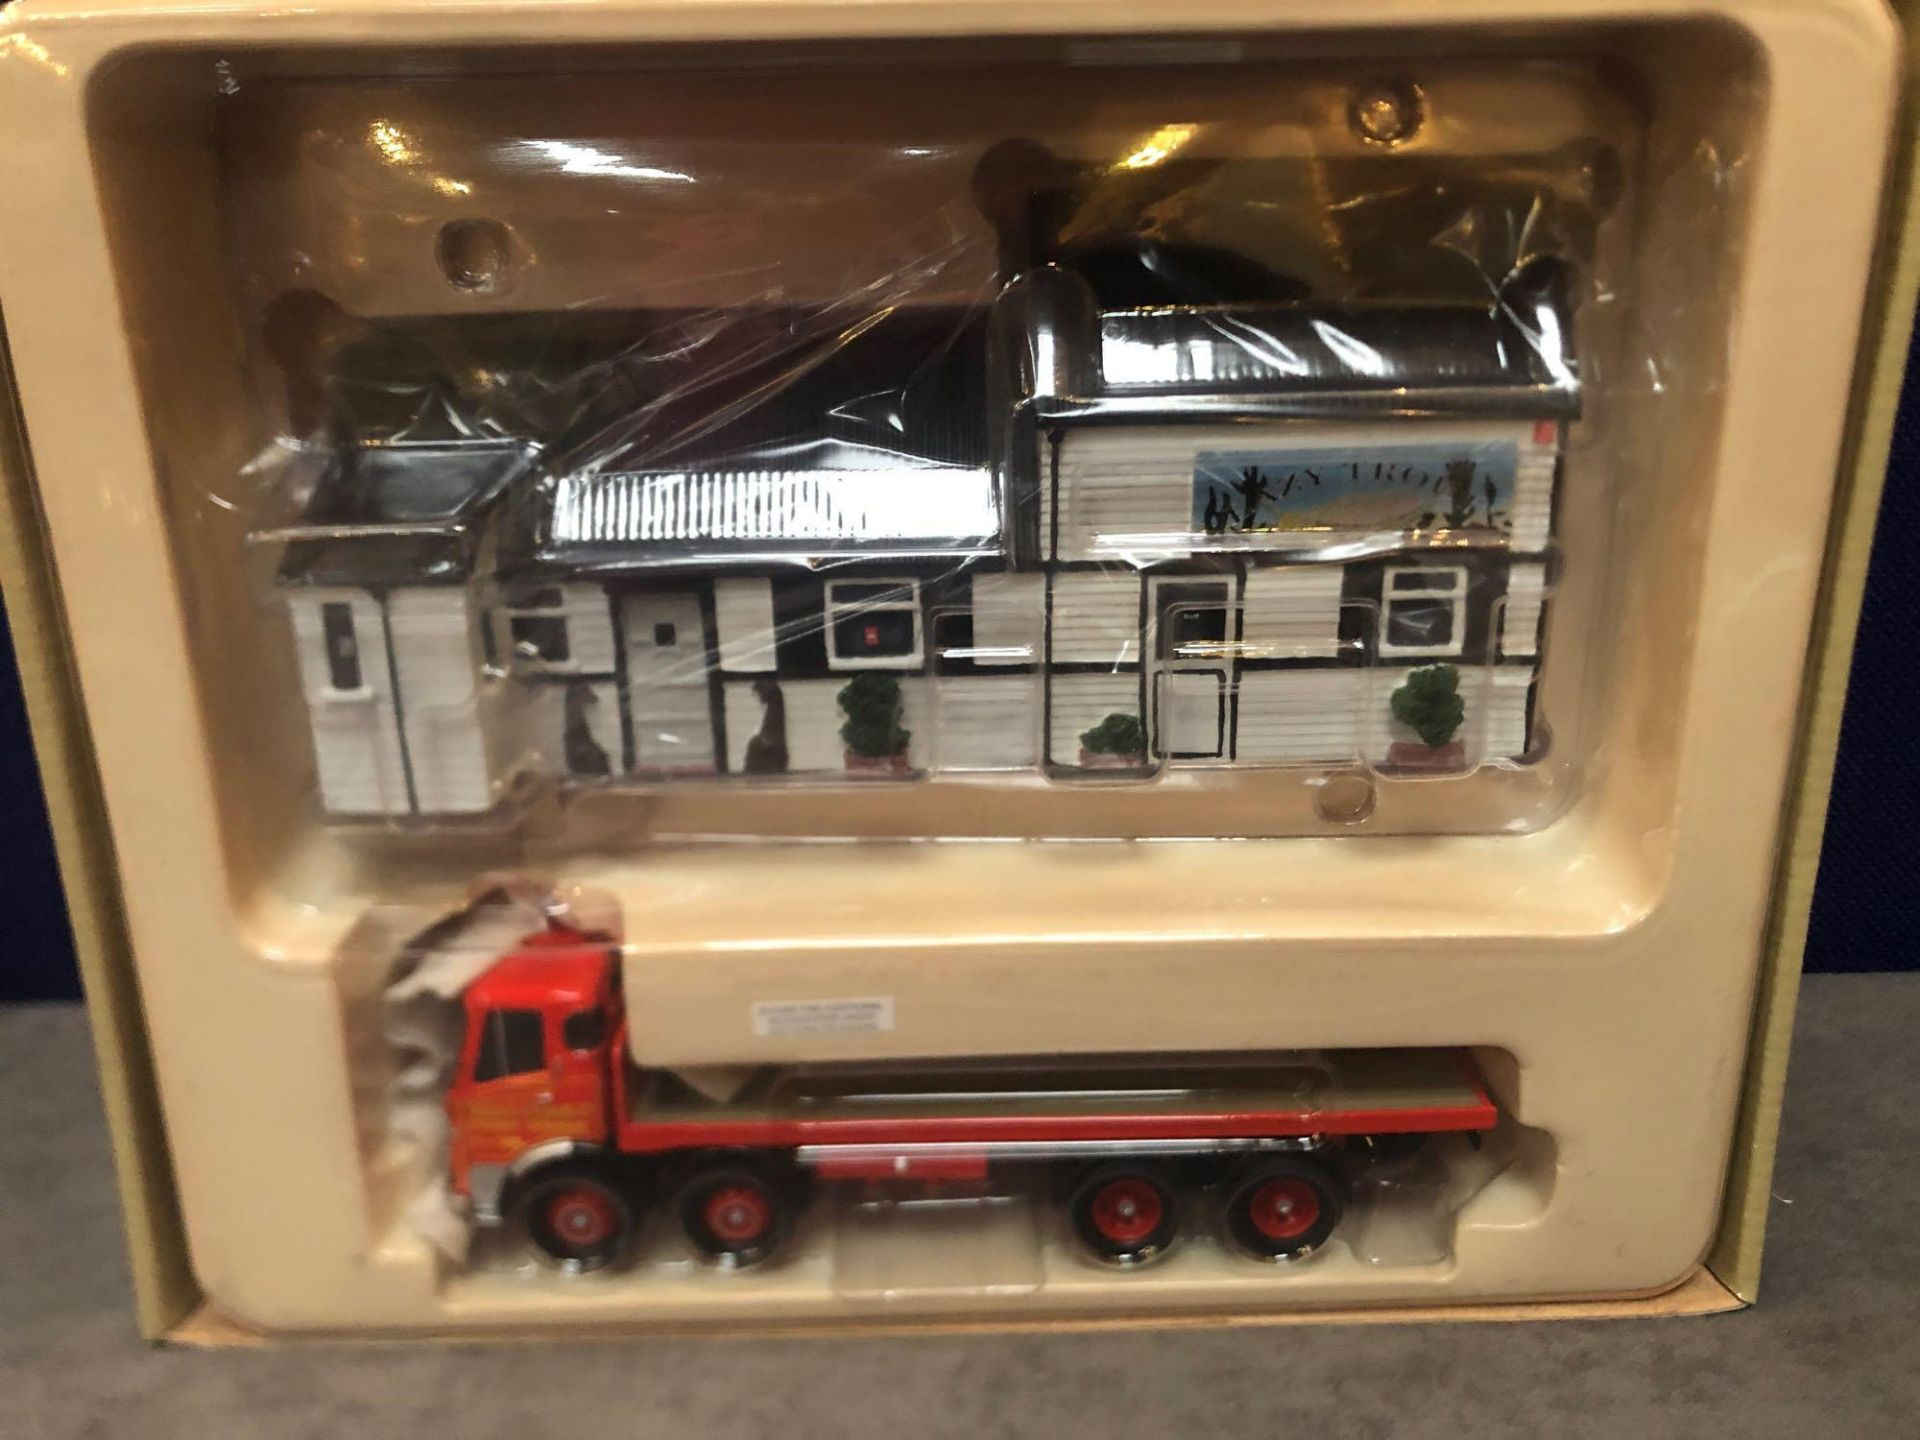 Corgi CC11501 AEC Platform Lorry and Diorama Siddle Cook - Diecast Metal Model With Plastic Parts - Image 2 of 2